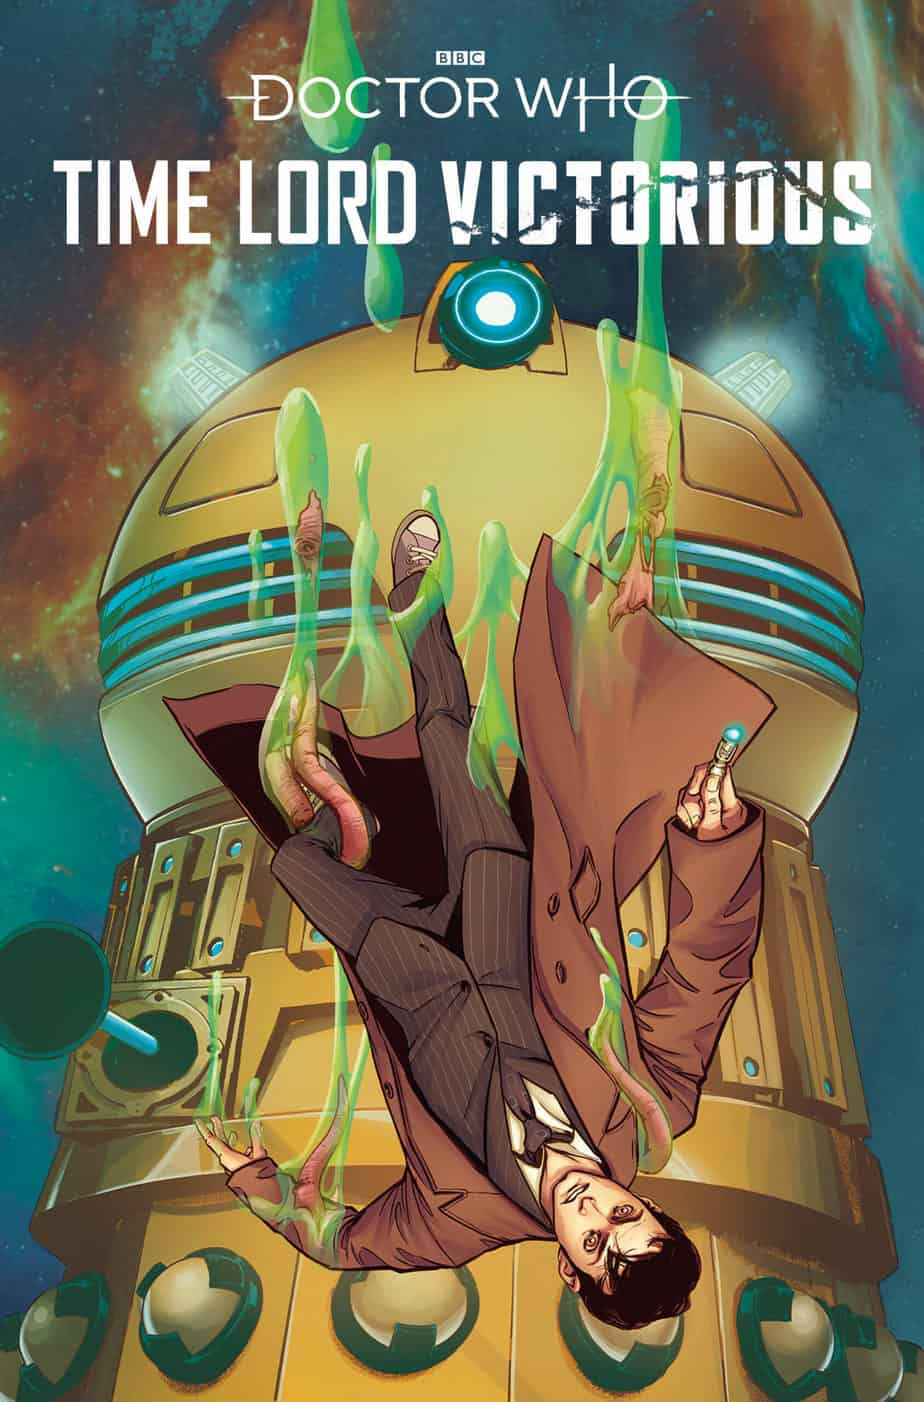 Doctor Who: Time Lord Victorious #1 - Cover B